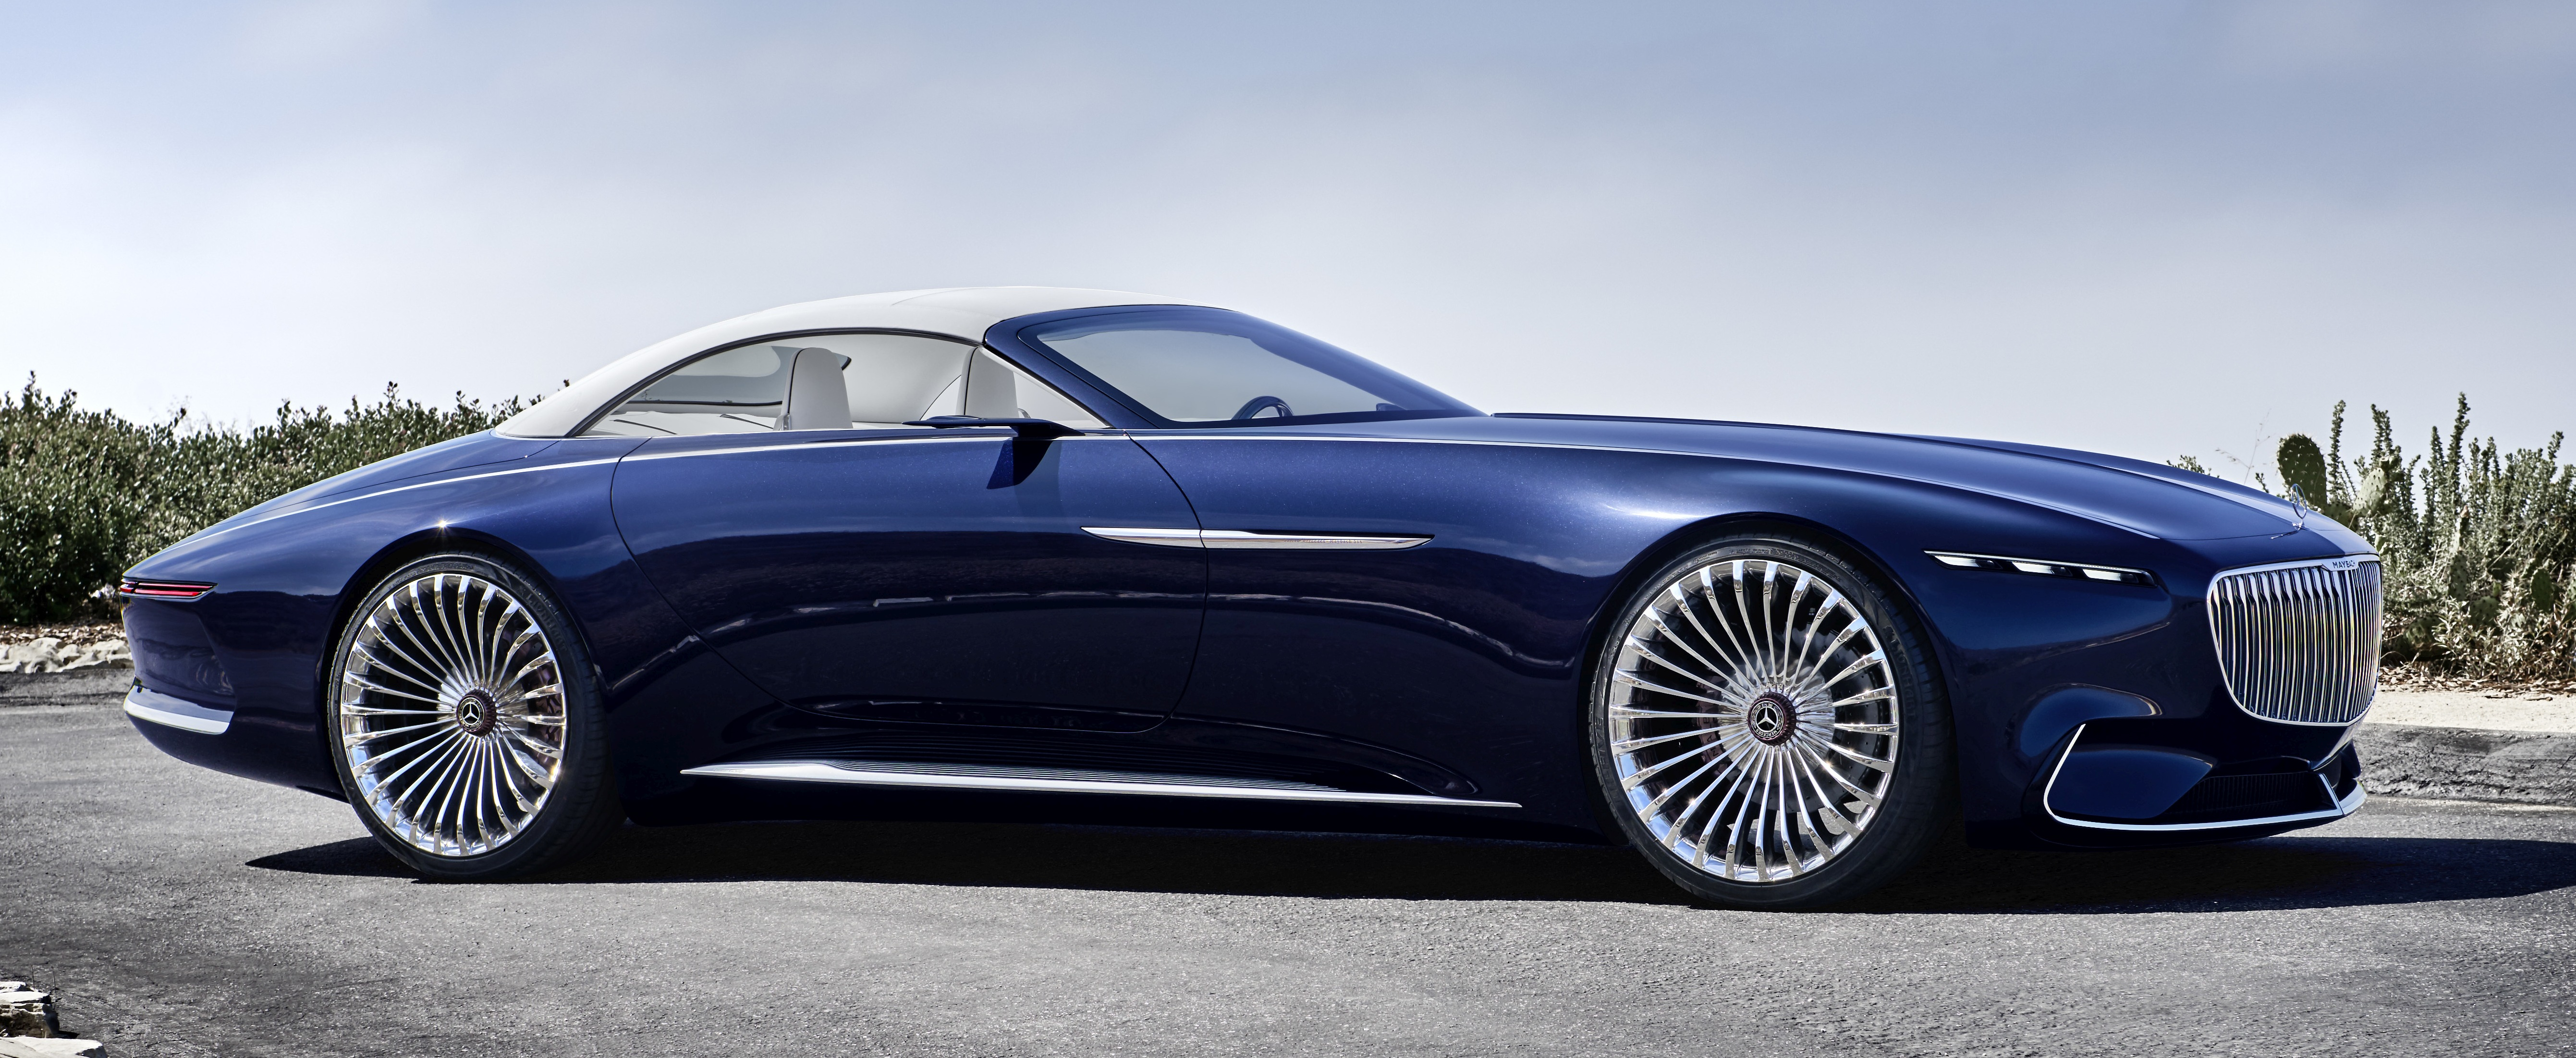 2018 maybach vision price.  2018 itu0027s called the vision mercedesmaybach 6 cabriolet and itu0027s  mercedesbenzu0027s latest take on what a luxury convertible of future might well shape up to  throughout 2018 maybach vision price